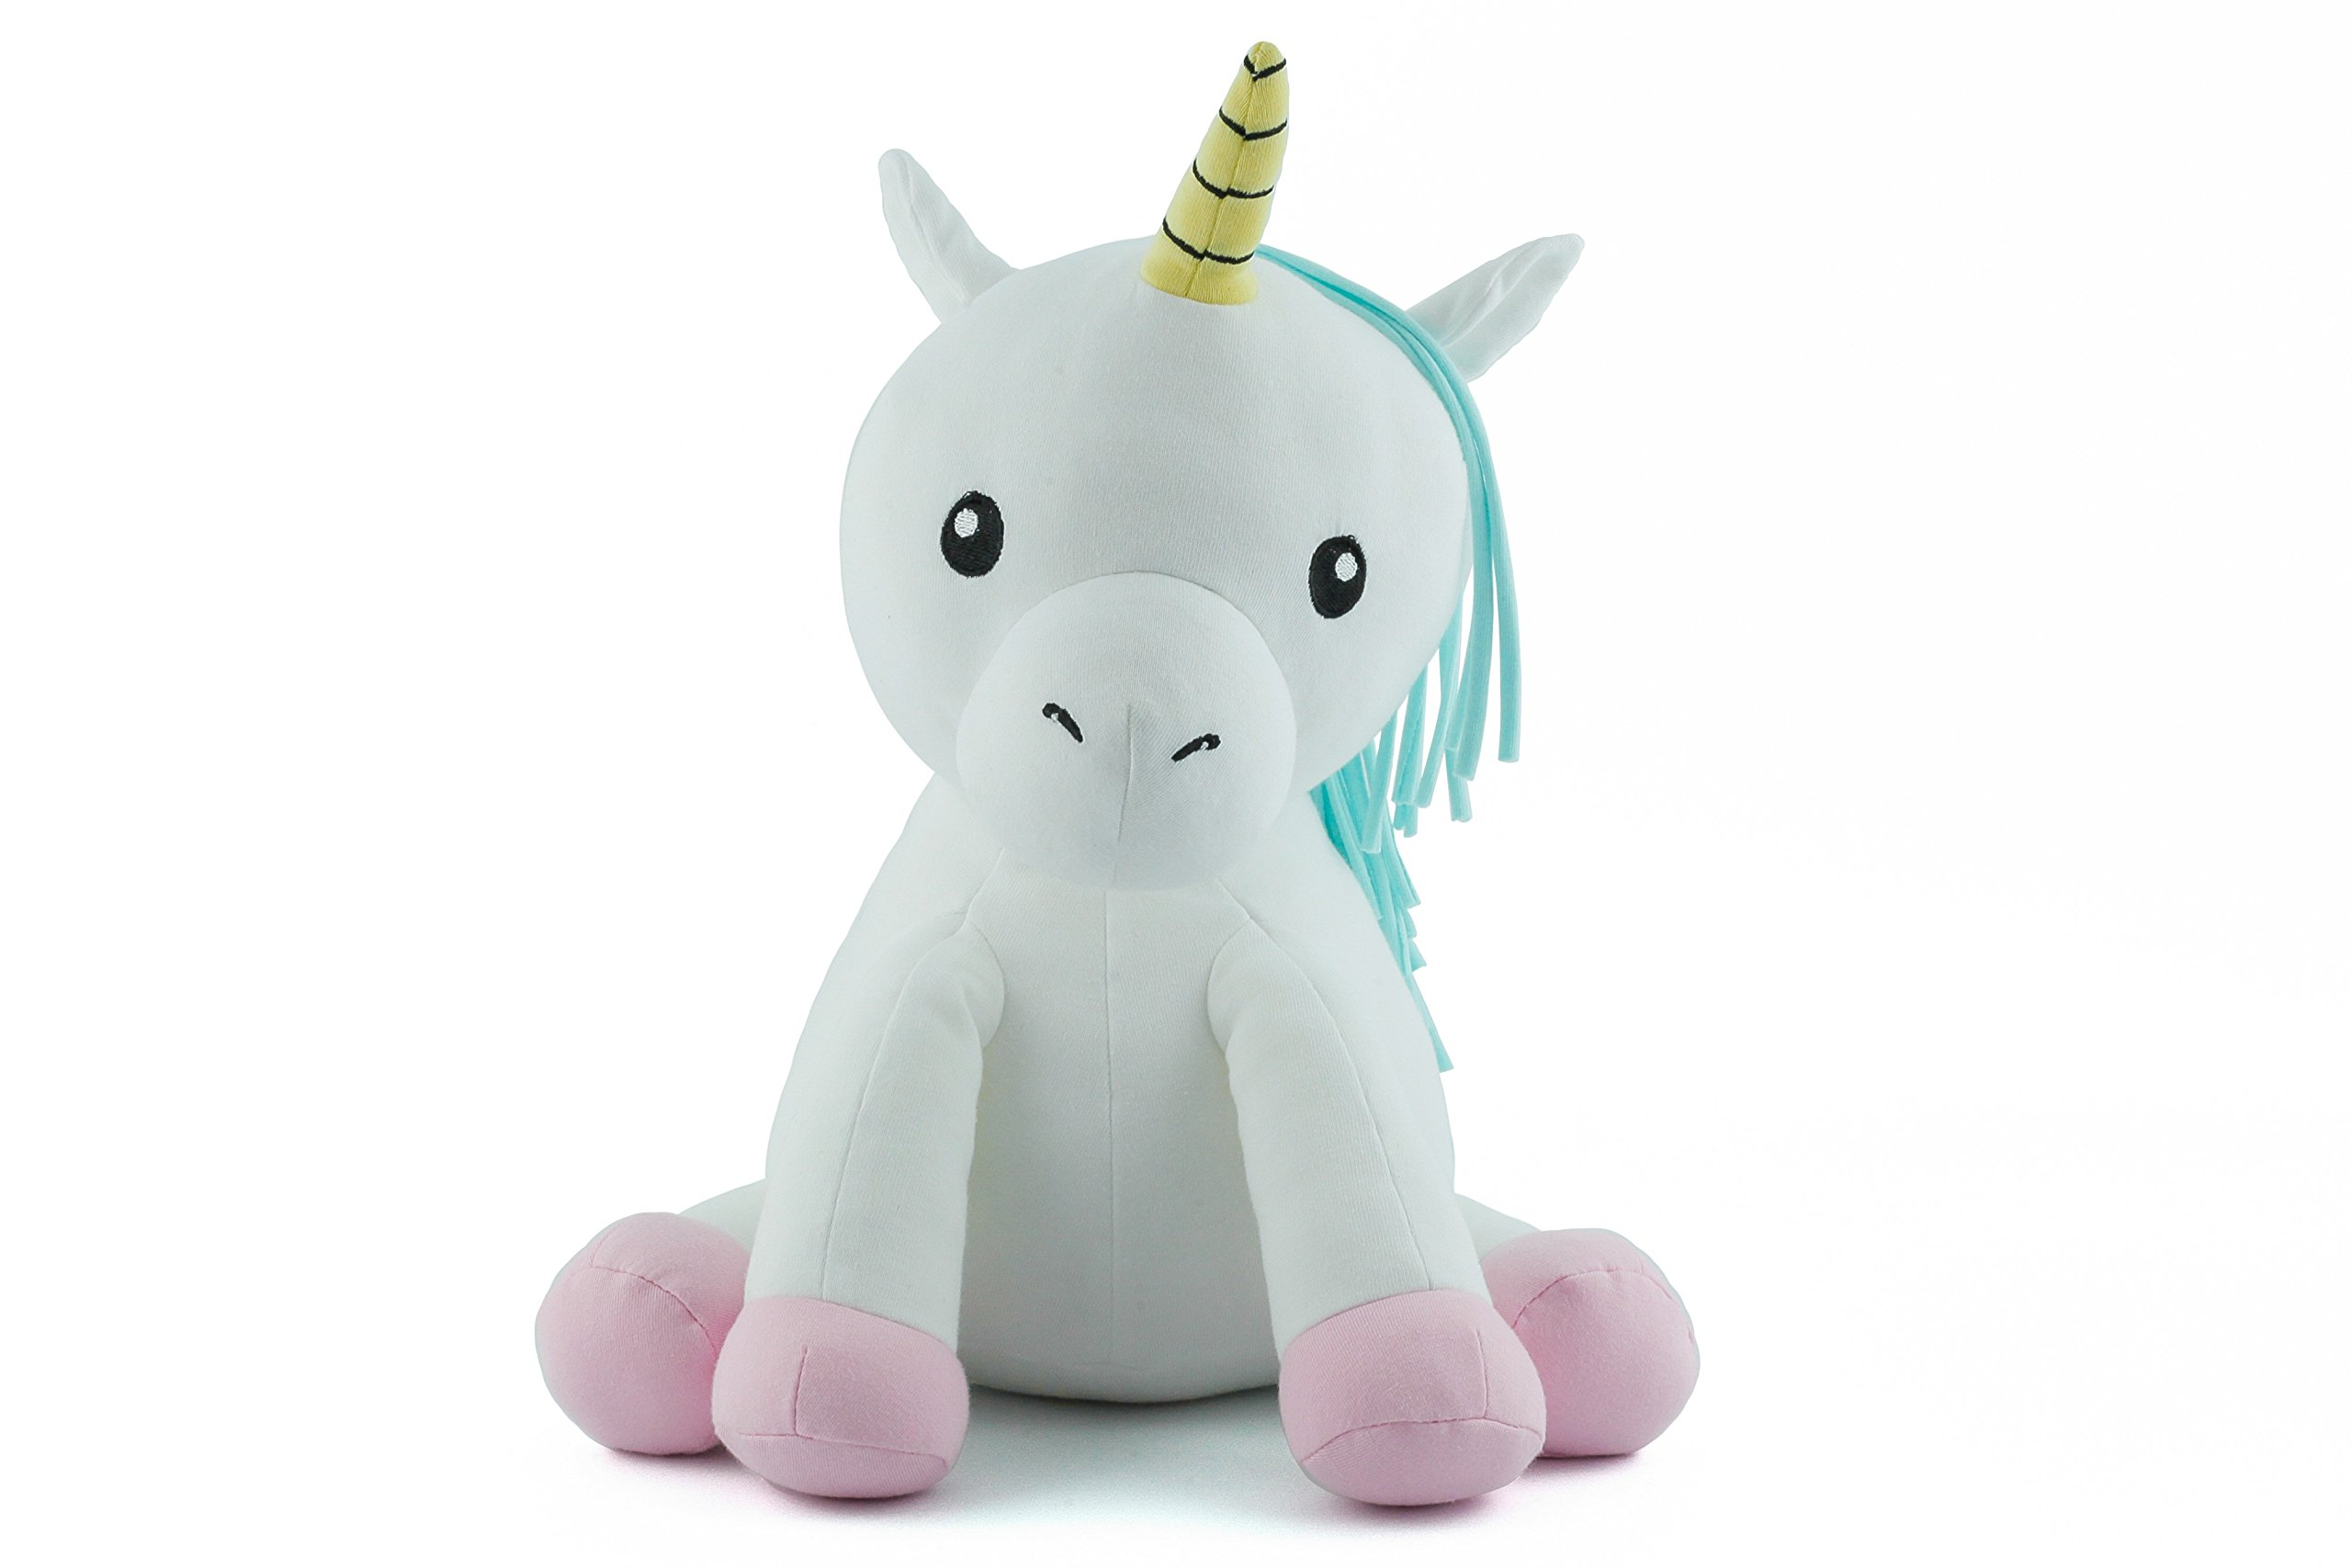 Elly Lu Cupcake The Unicorn - Organic Stuffed Animal (15 in) by Elly Lu